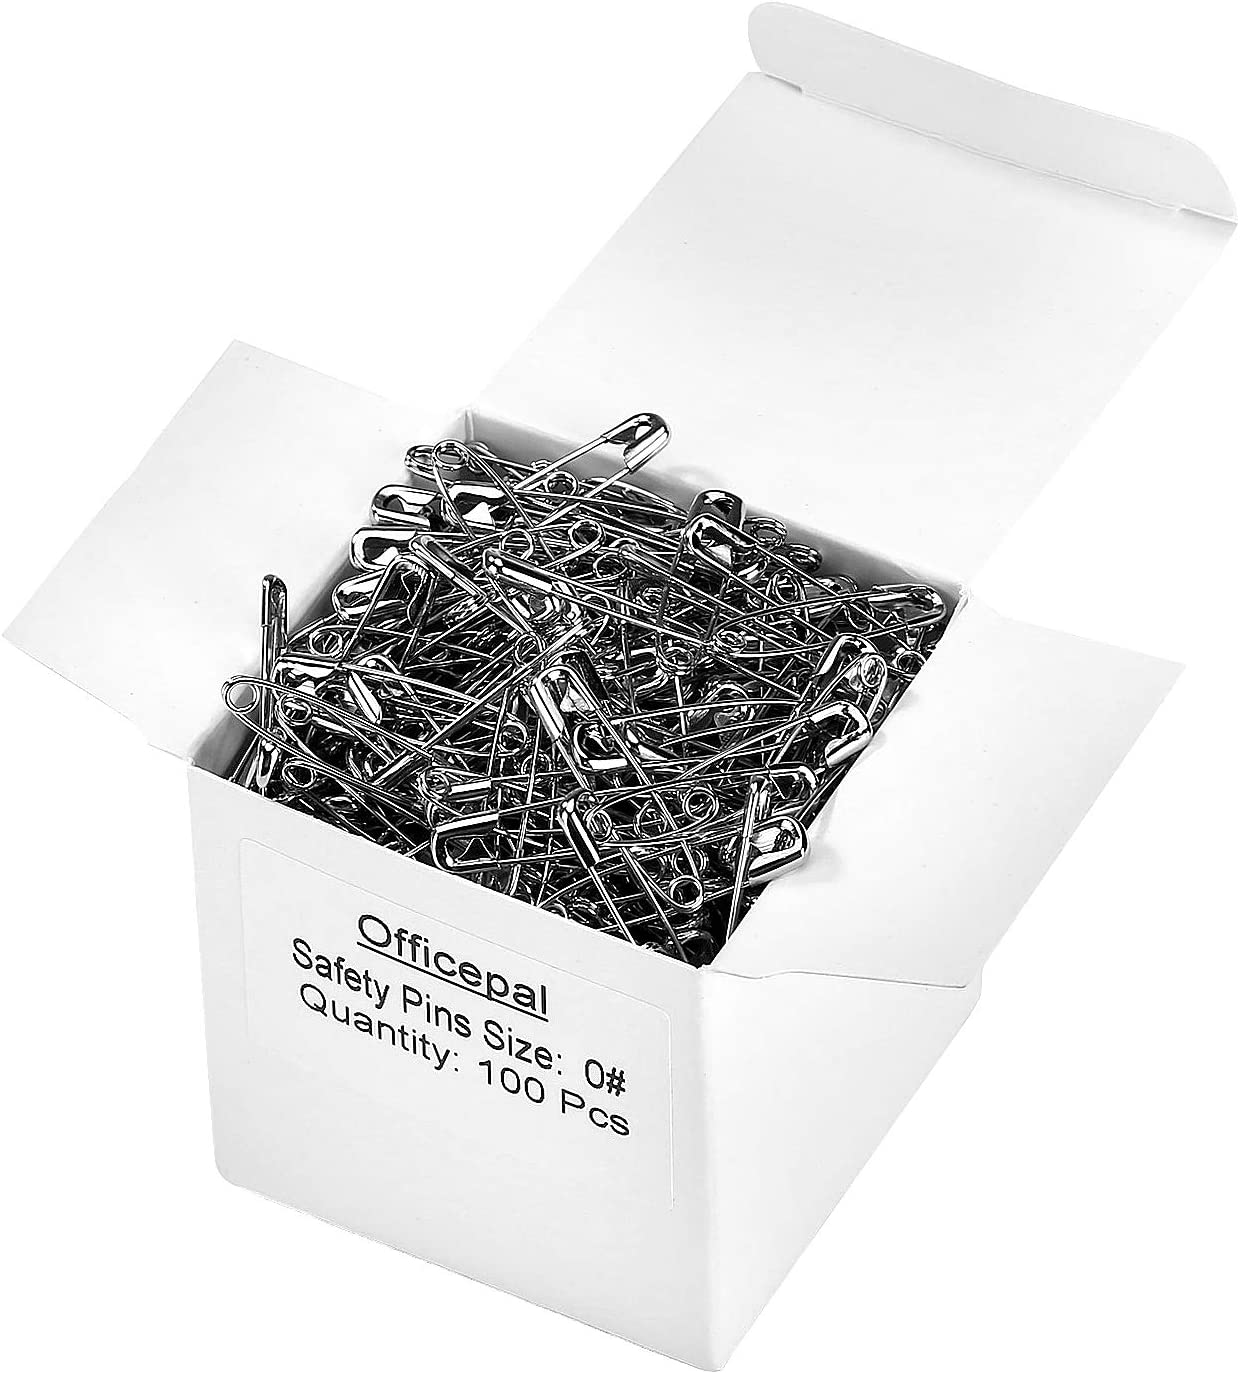 27mm 45mm Safety Pins PREMIUM Quality Steel Strong Industry Standard Craft Aid